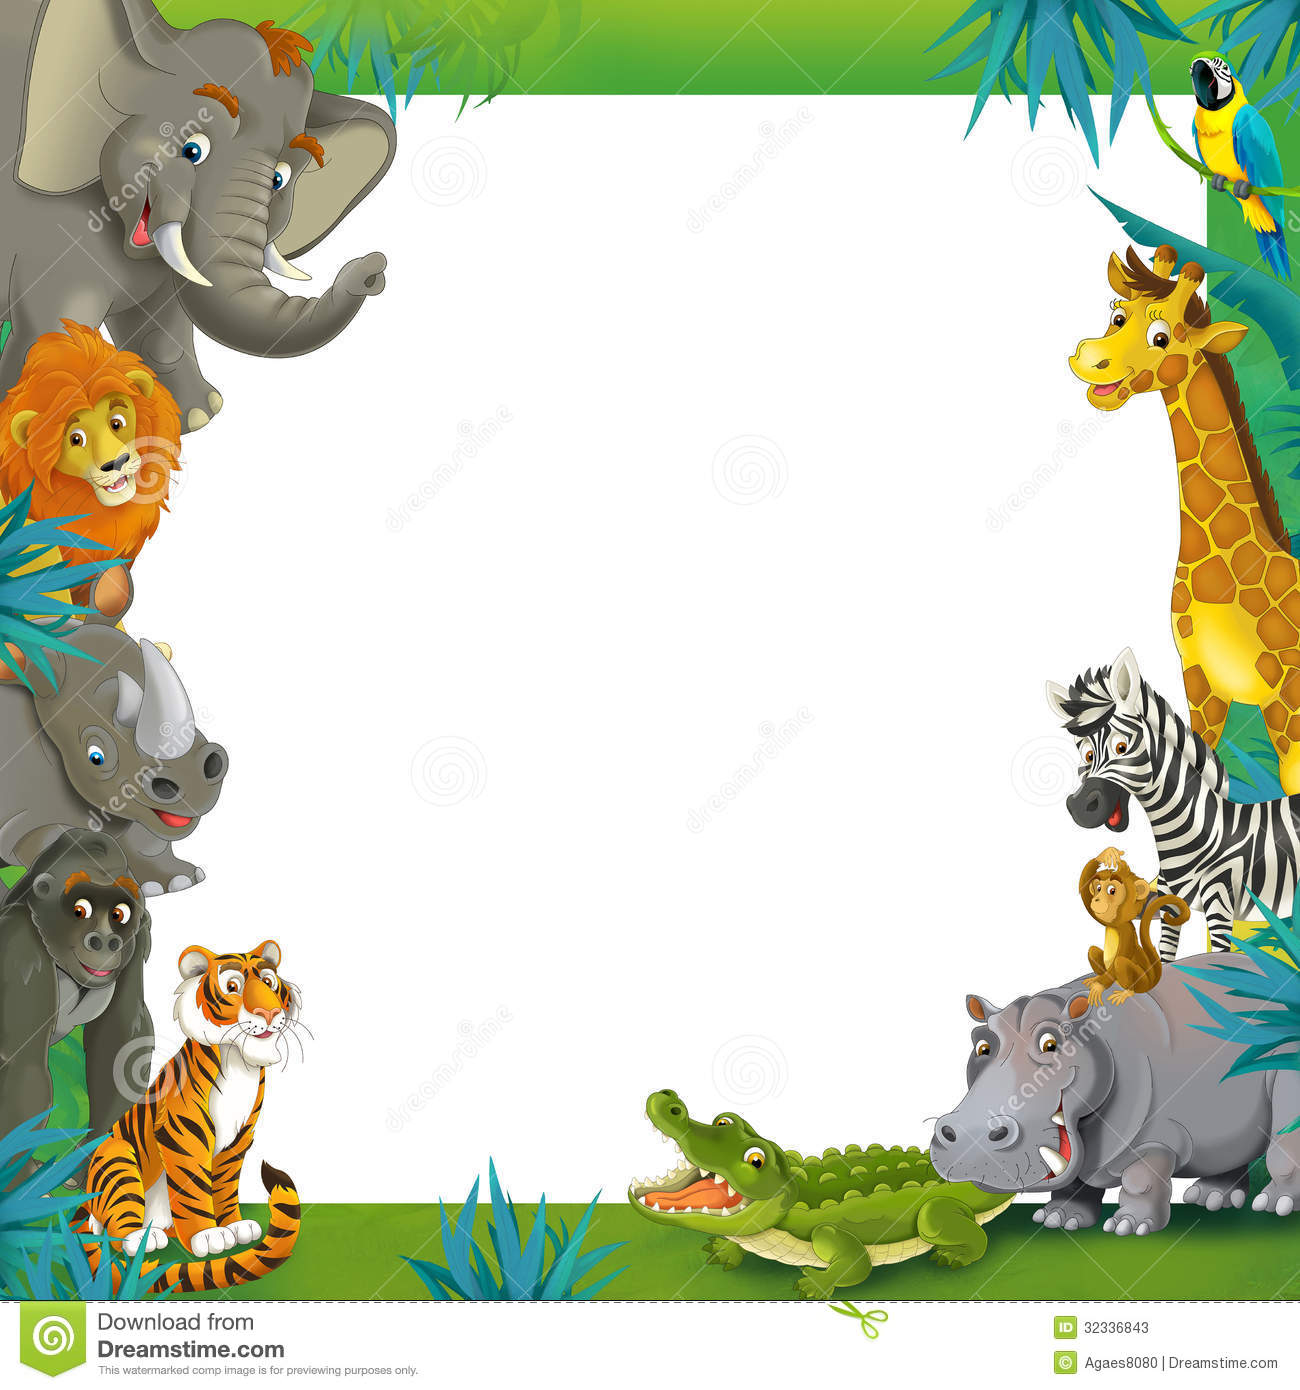 Jungle Animal Border Clipart - Clipart Kid